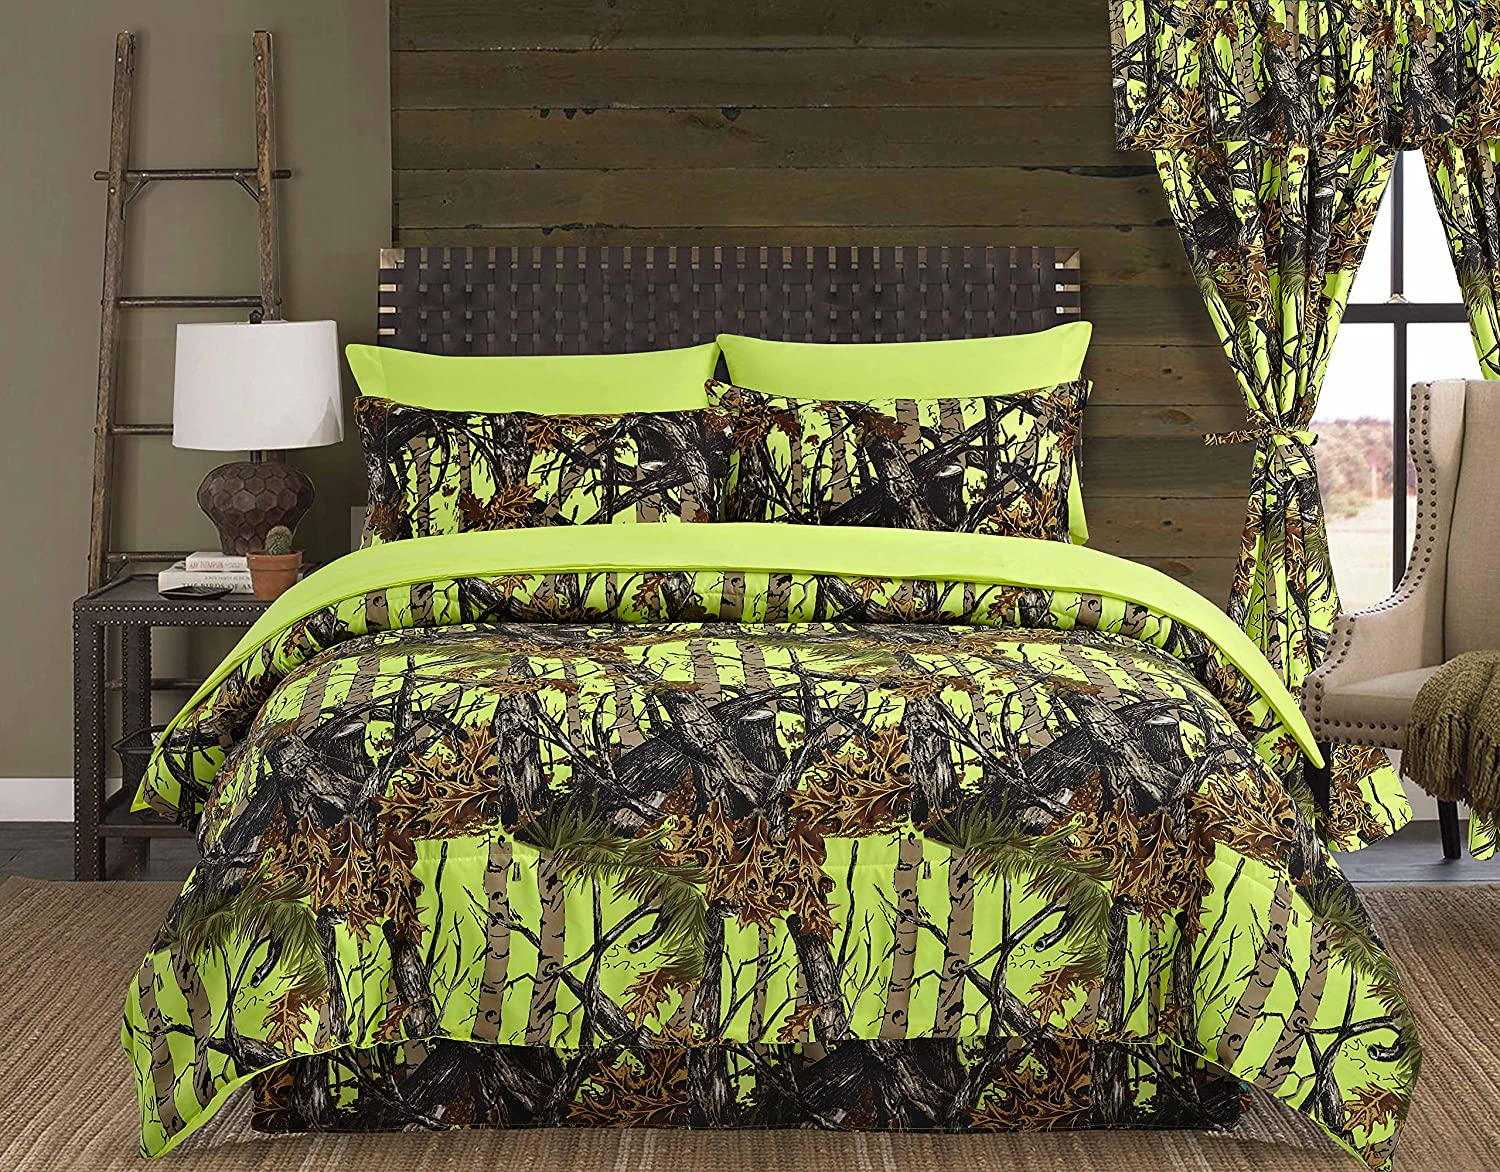 Regal Comfort The Woods Lime Green Camouflage King 4 Piece Premium Luxury Comforter